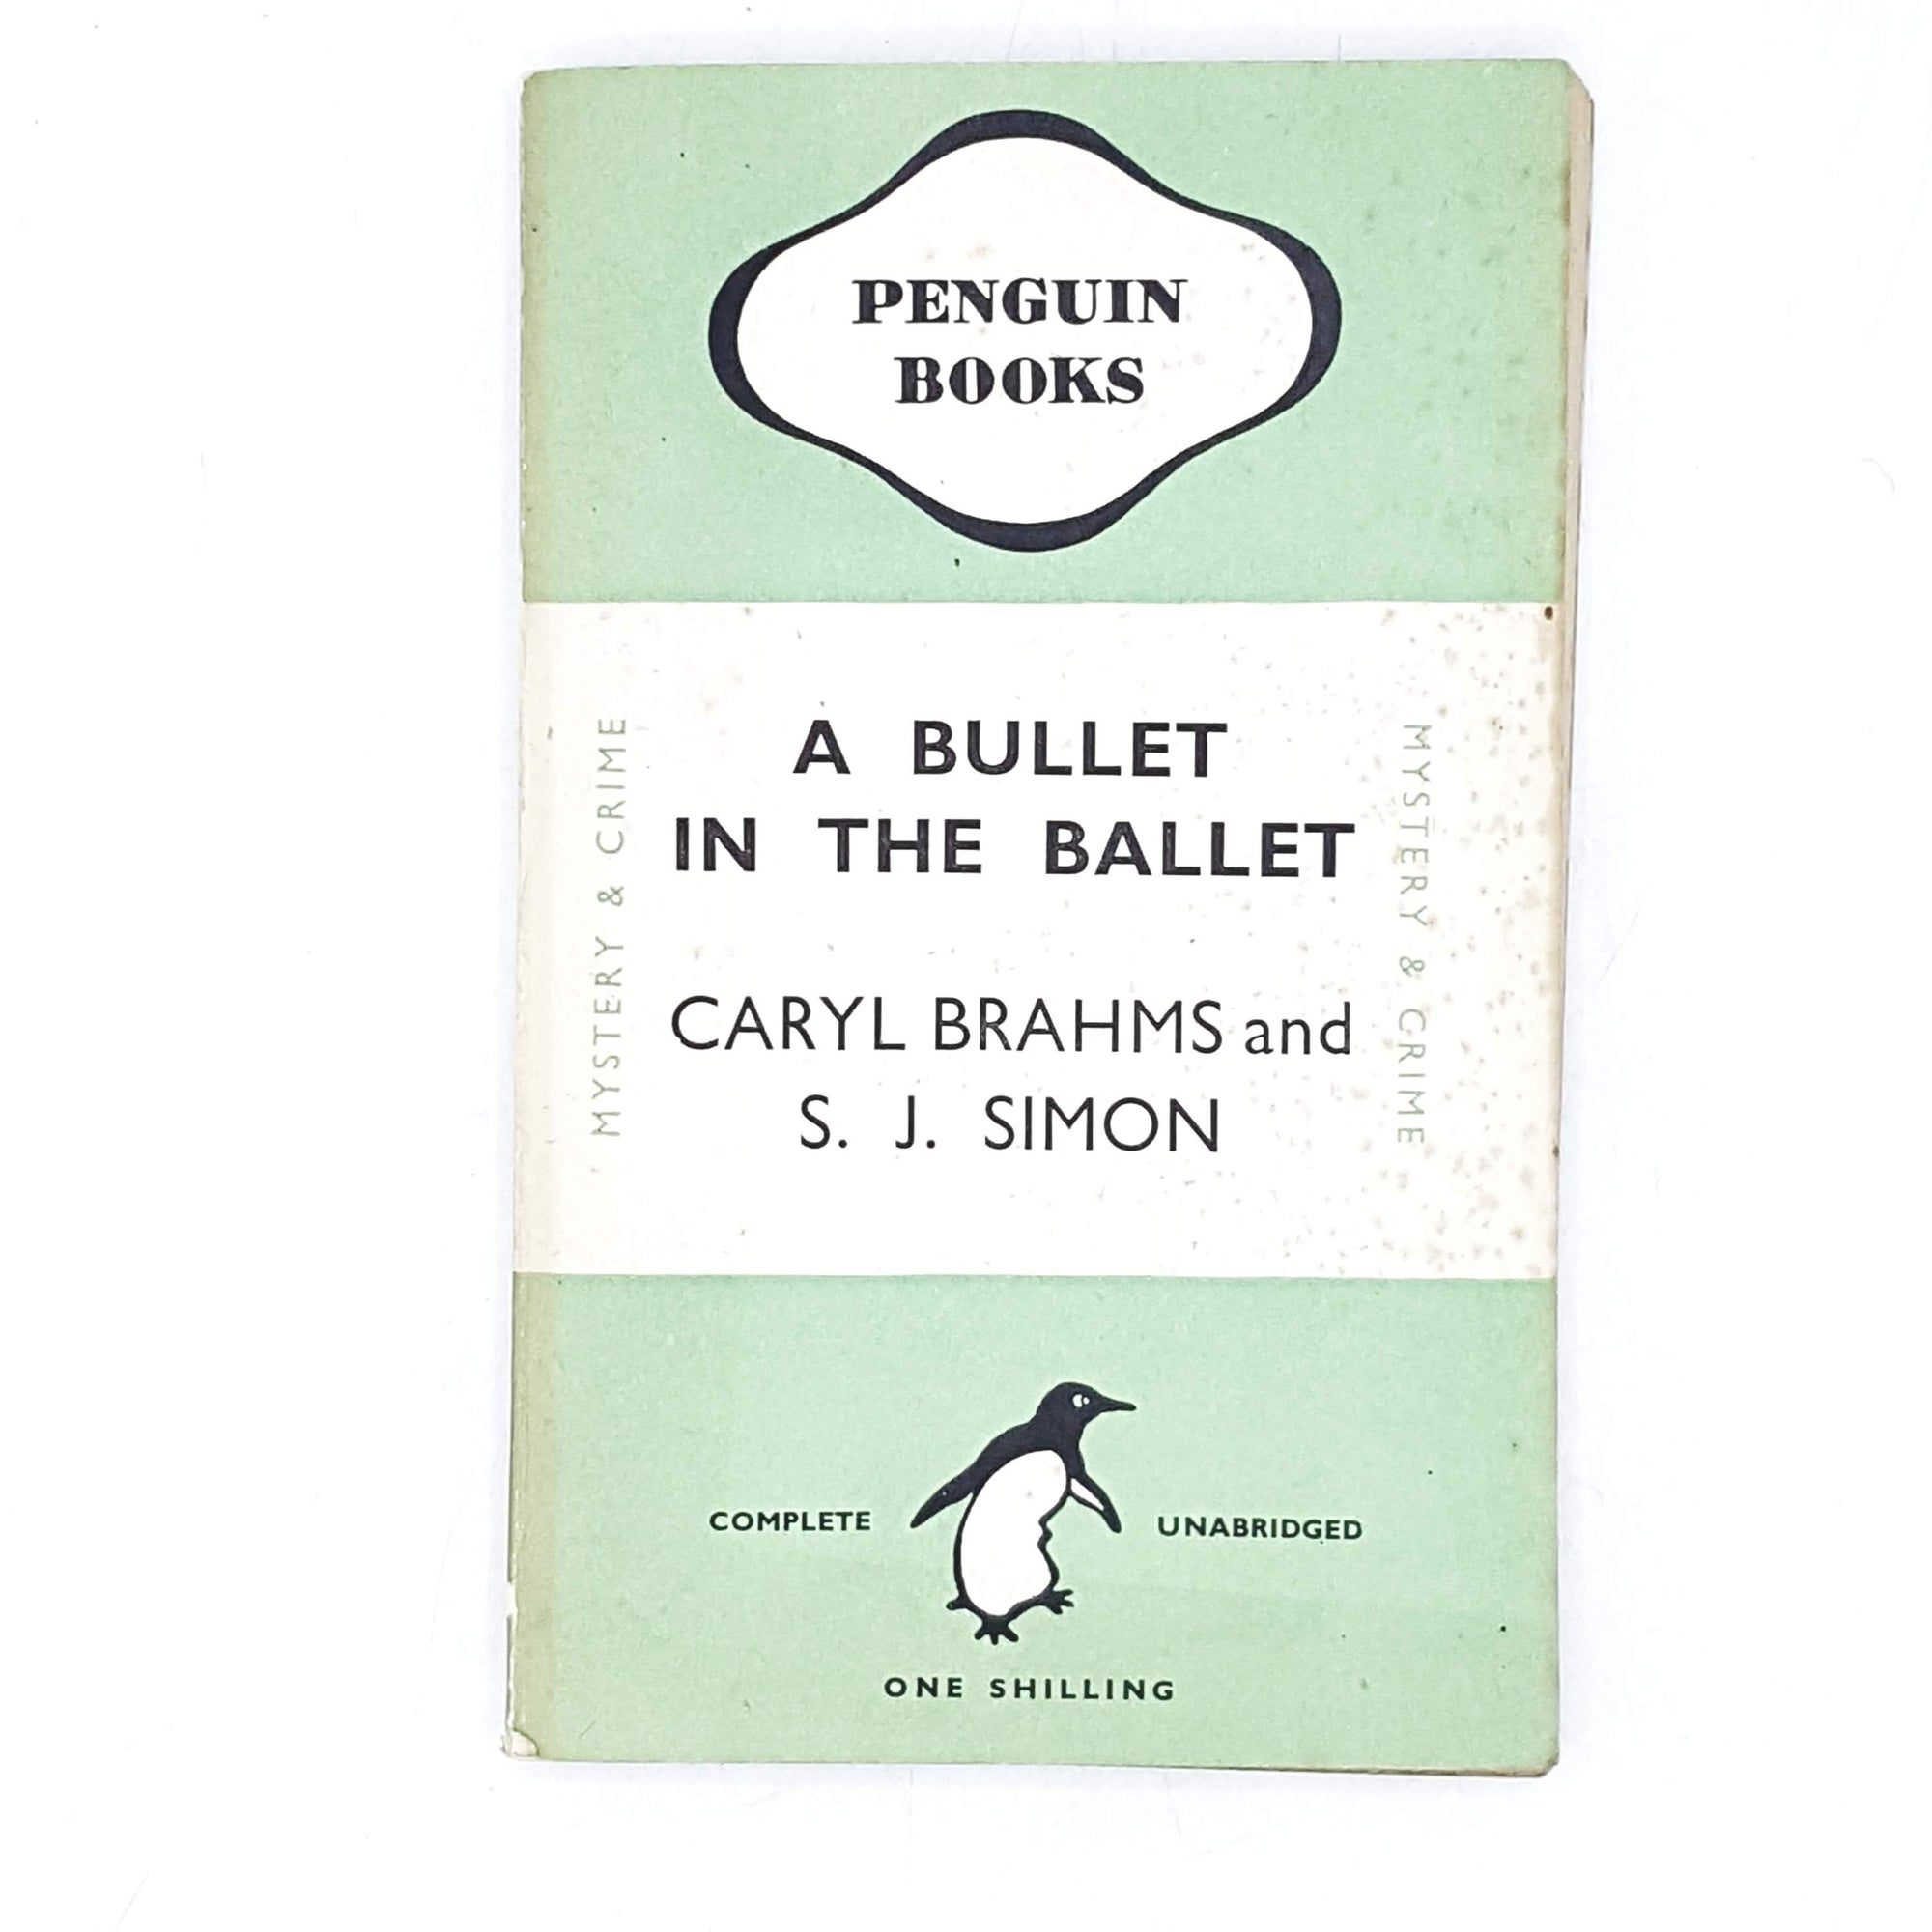 Vintage Penguin A Bullet in the Ballet by Caryl Brahms and S. J. Simon 1946